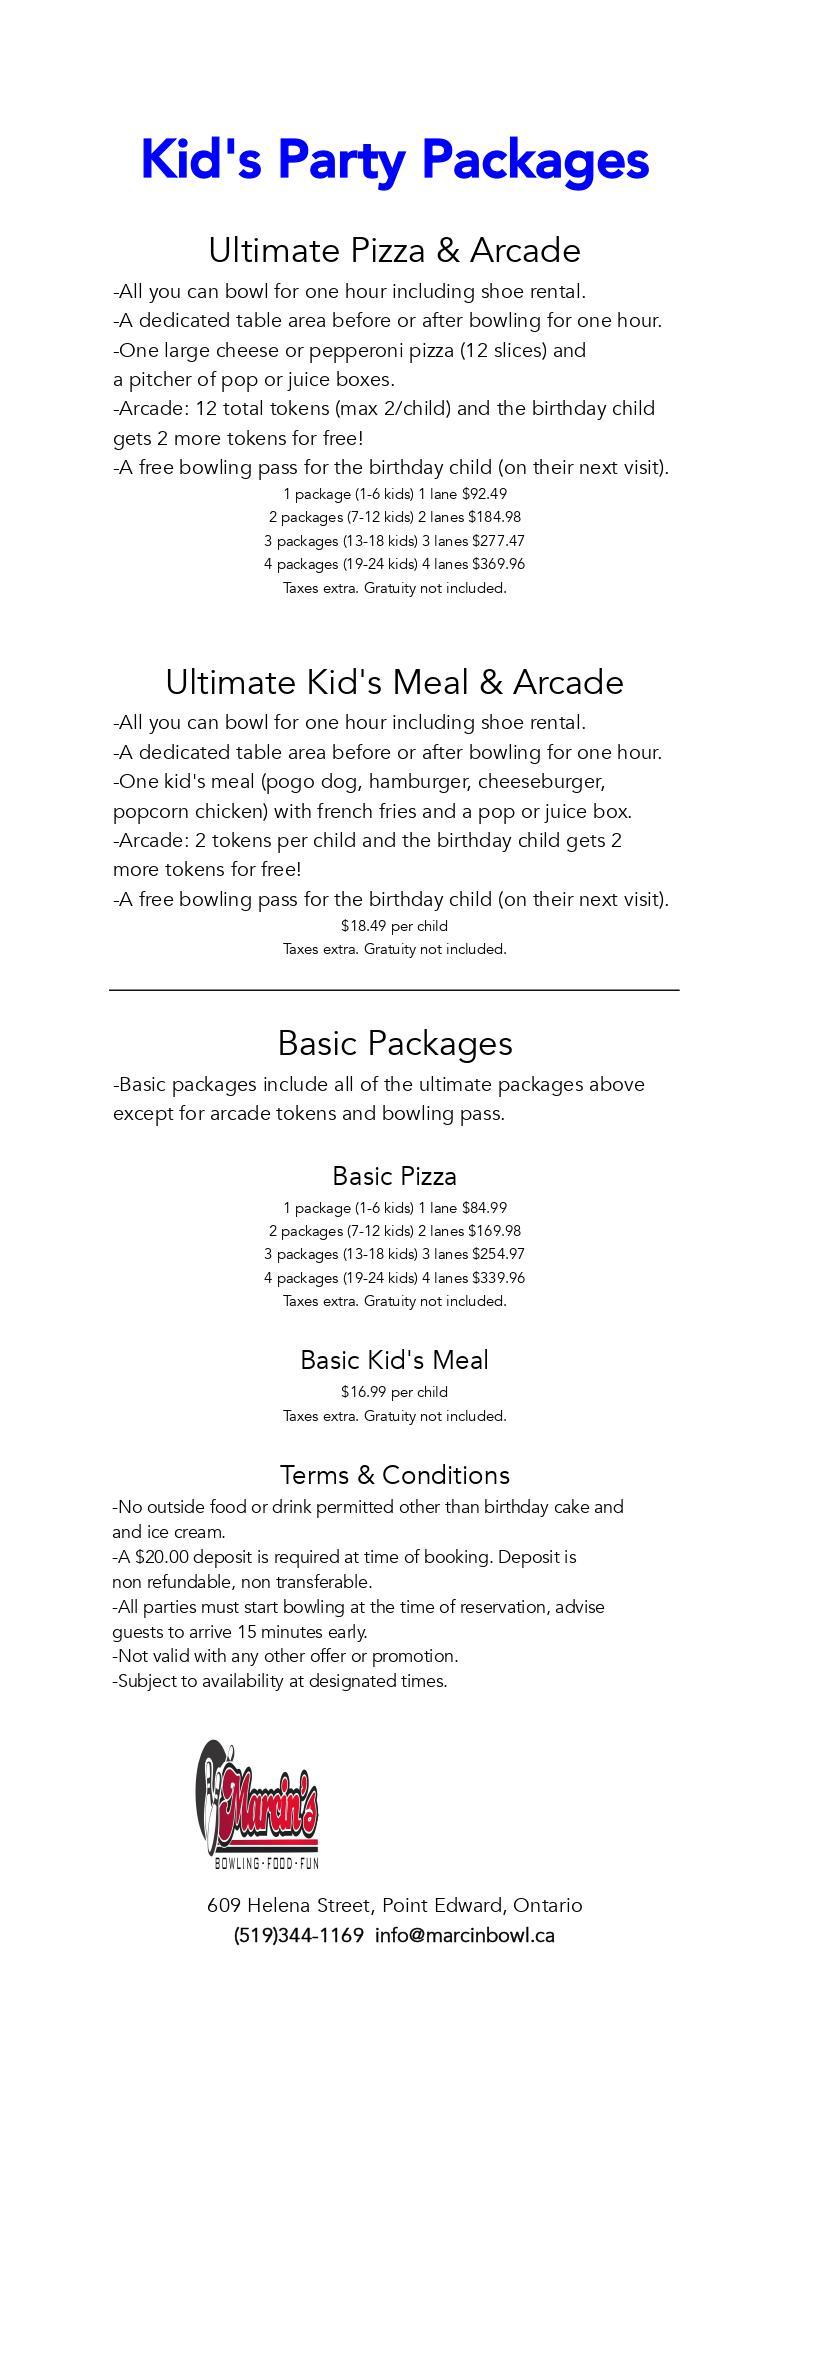 Kid's Party Packages Ultimate Pizza & Arcade -All you can bowl for one hour including shoe rental. -A dedicated table area before or after bowling for one hour. -One large cheese or pepperoni pizza (12 slices) and a pitcher of pop or juice boxes. -Arcade: 12 total tokens (max 2/child) and the birthday child gets 2 more tokens for free! -A free bowling pass for the birthday child (on their next visit). 1 package (1-6 kids) 1 lane $92.49 2 packages (7-12 kids) 2 lanes $184.98 3 packages (13-18 kids) 3 lanes $277.47 4 packages (19-24 kids) 4 lanes $369.96 Taxes extra. Gratuity not included. Ultimate Kid's Meal & Arcade -All you can bowl for one hour including shoe rental. -A dedicated table area before or after bowling for one hour. -One kid's meal (pogo dog, hamburger, cheeseburger, popcorn chicken) with french fries and a pop or juice box. -Arcade: 2 tokens per child and the birthday child gets 2 more tokens for free! -A free bowling pass for the birthday child (on their next visit). $18.49 per child Taxes extra. Gratuity not included. Basic Packages -Basic packages include all of the ultimate packages above except for arcade tokens and bowling pass. Basic Pizza 1 package (1-6 kids) 1 lane $84.99 2 packages (7-12 kids) 2 lanes $169.98 3 packages (13-18 kids) 3 lanes $254.97 4 packages (19-24 kids) 4 lanes $339.96 Taxes extra. Gratuity not included. Basic Kid's Meal $16.99 per child Taxes extra. Gratuity not included. Terms & Conditions -No outside food or drink permitted other than birthday cake and and ice cream. -A $20.00 deposit is required at time of booking. Deposit is non refundable, non transferable. -All parties must start bowling at the time of reservation, advise guests to arrive 15 minutes early. -Not valid with any other offer or promotion. -Subject to availability at designated times.